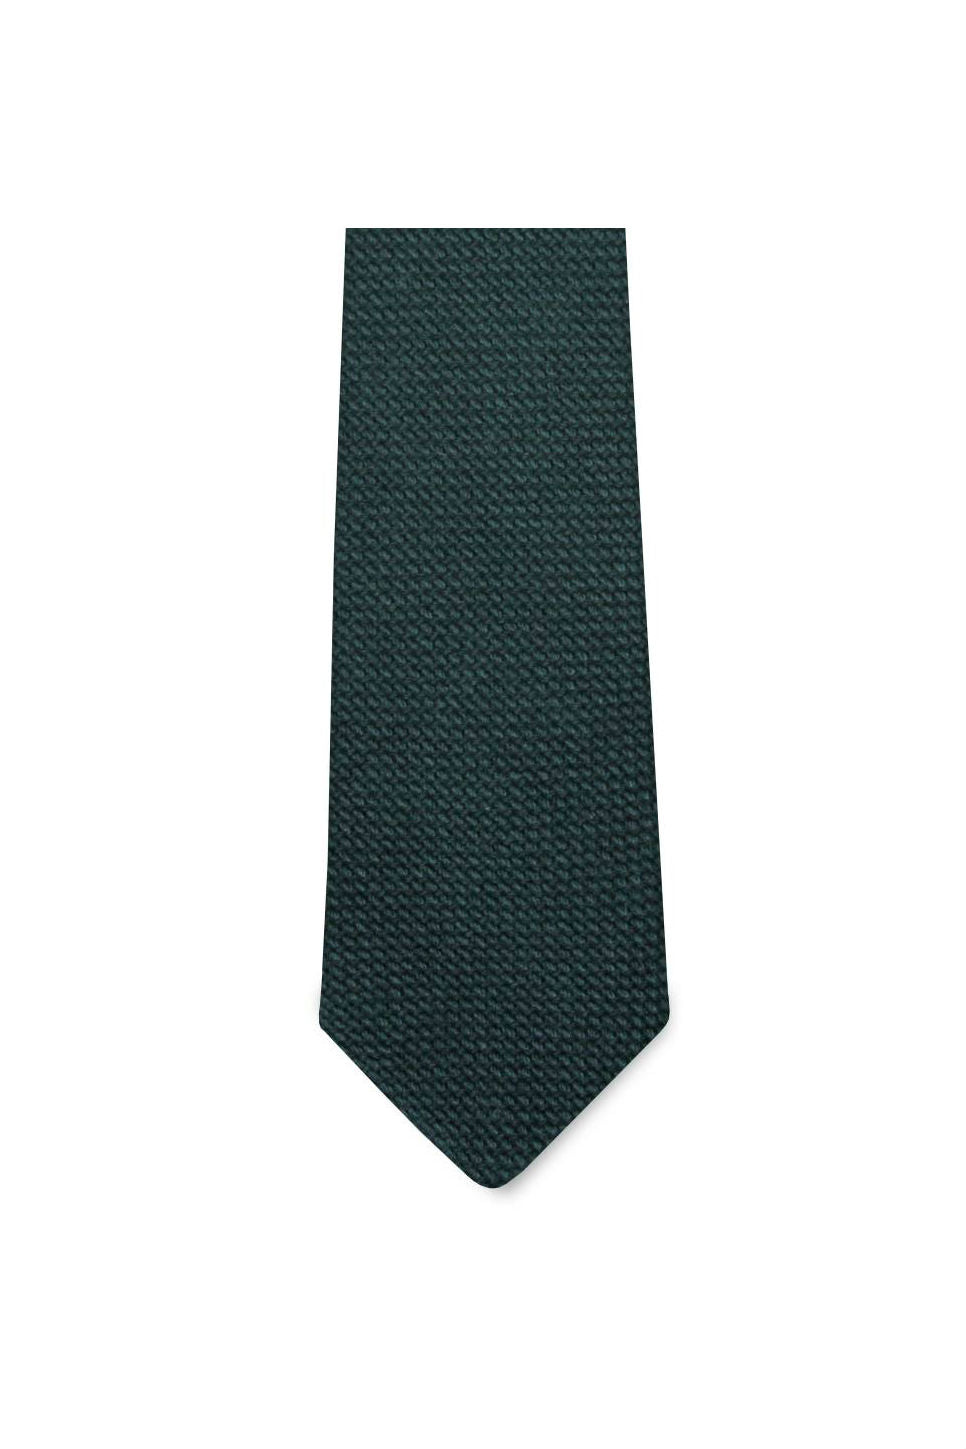 Pocket Square Clothing - Rivers Cotton Tie